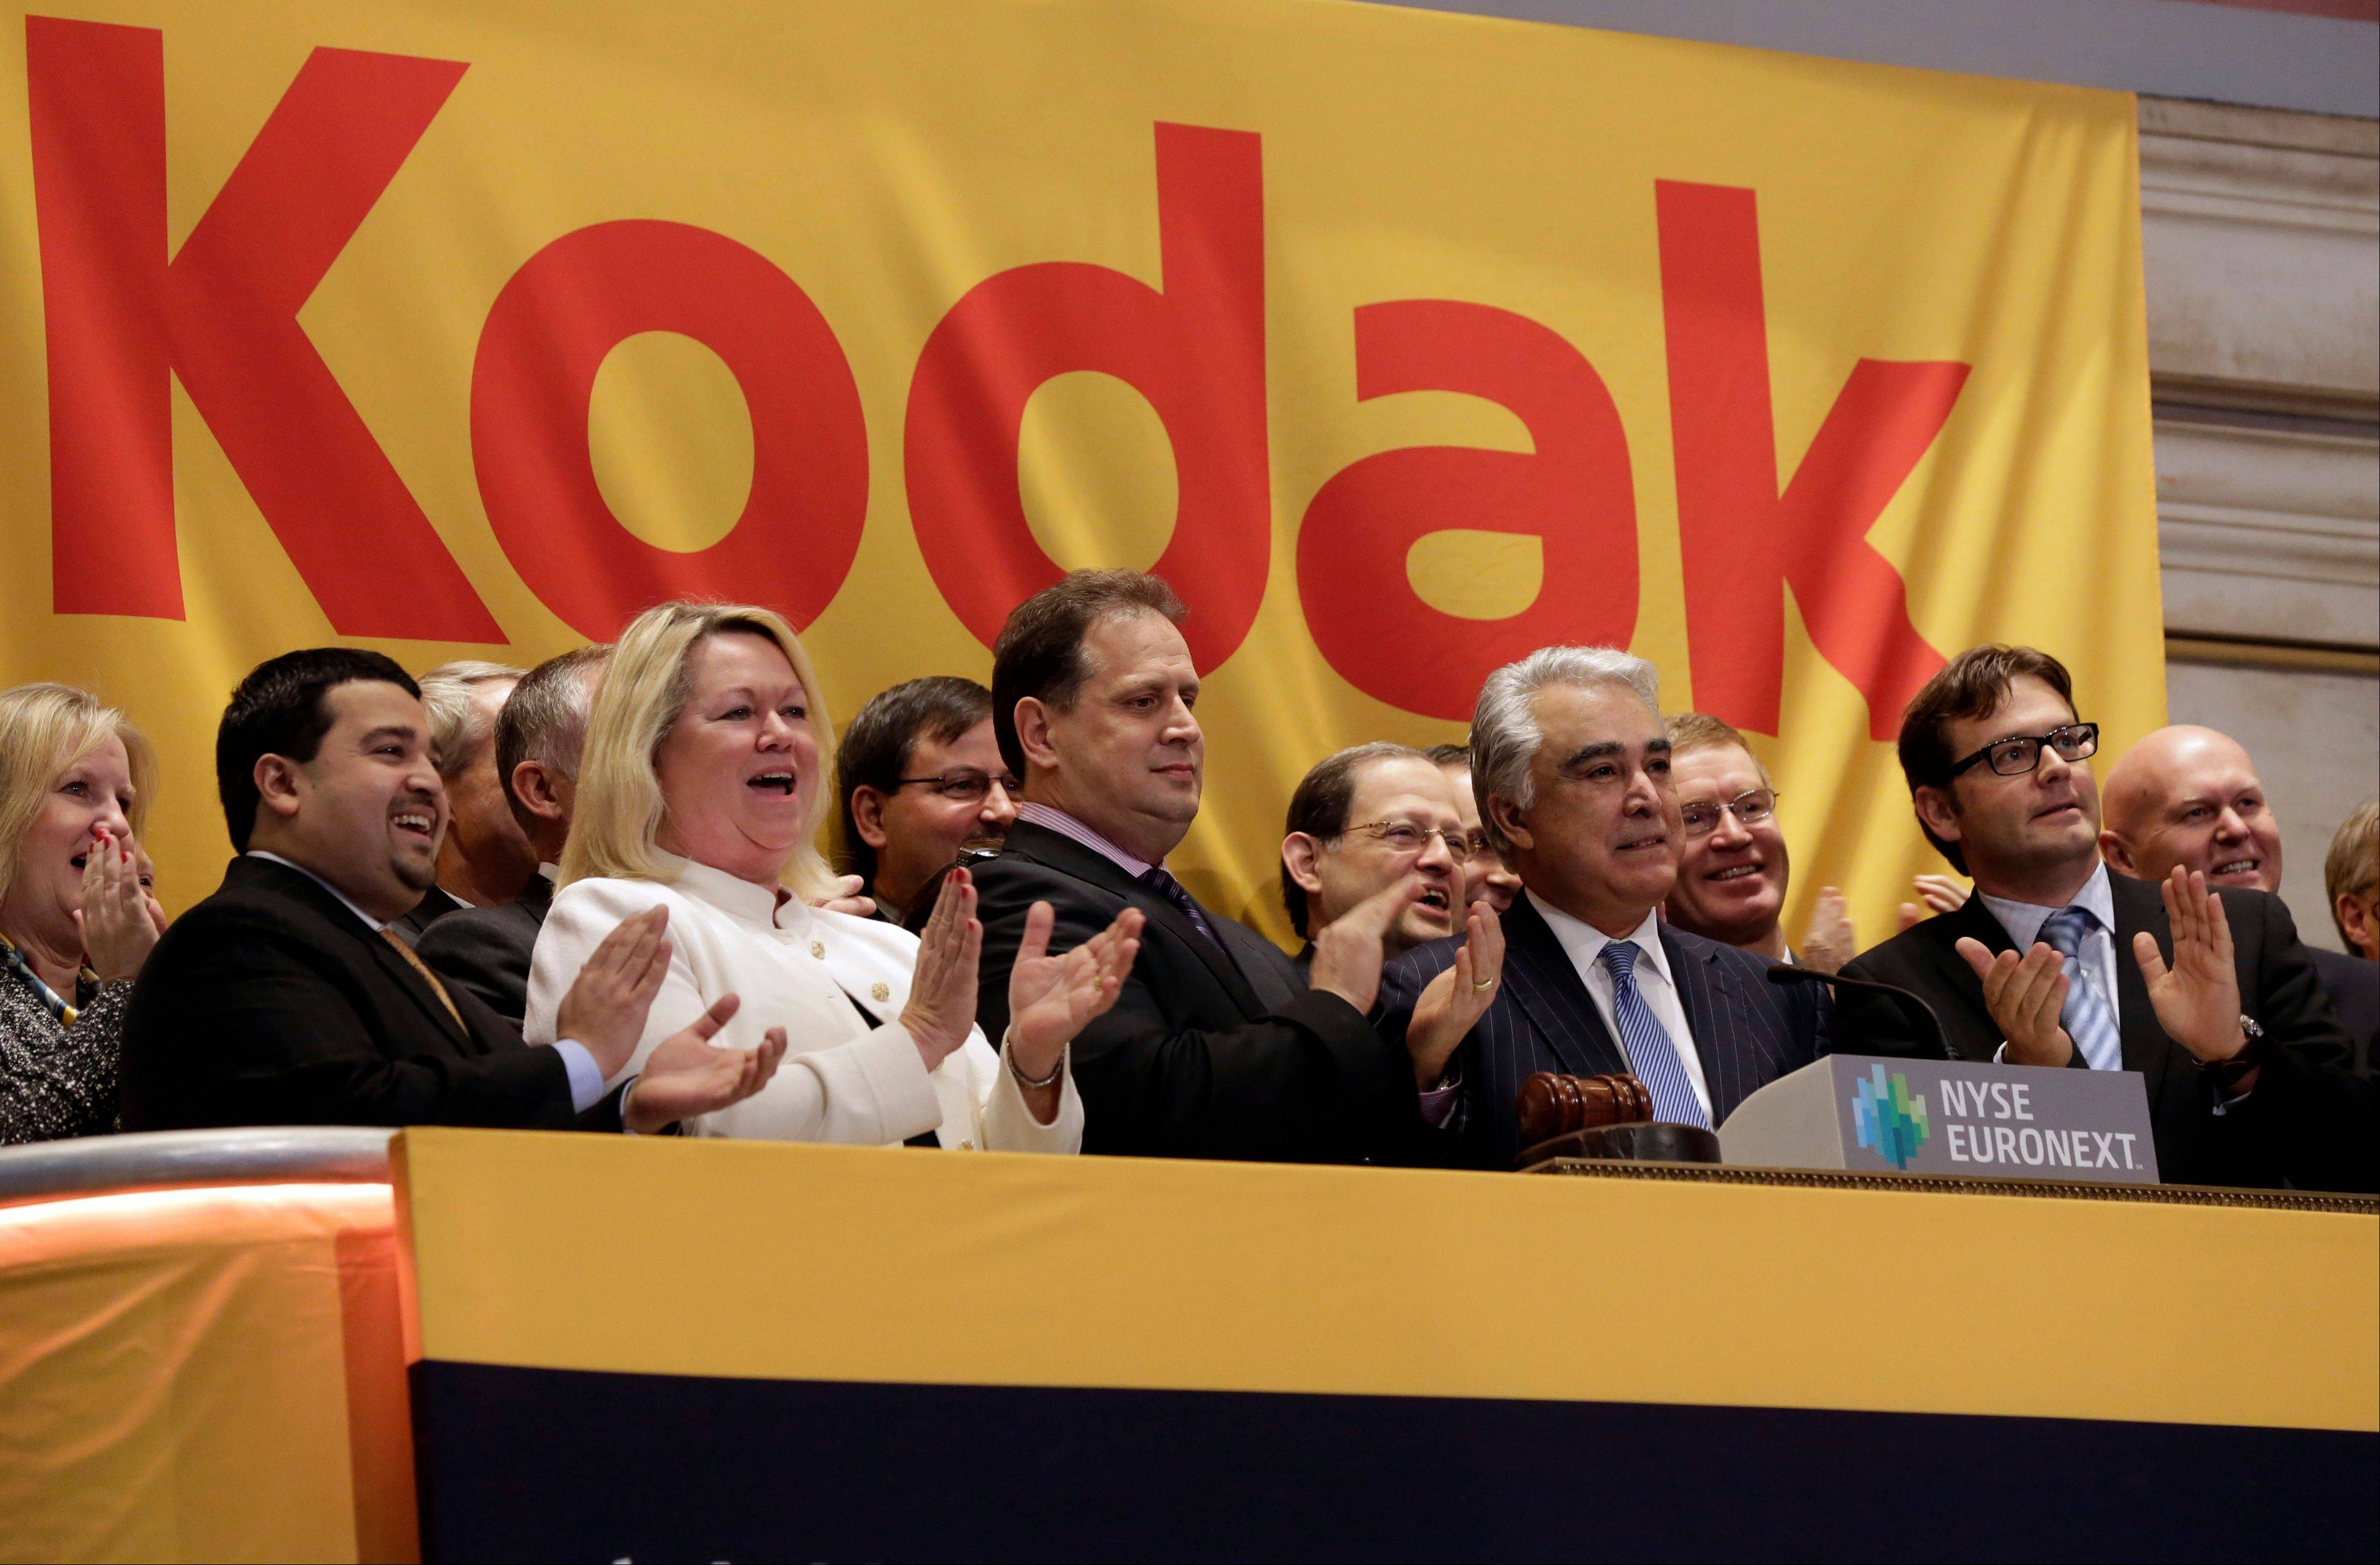 Kodak CEO Antonio Perez, right center, rings the opening bell of the New York Stock Exchange Wednesday. The stock market stumbled Wednesday as investors waited for the government's jobs report later this week and the beginning of quarterly earnings releases from corporate America.